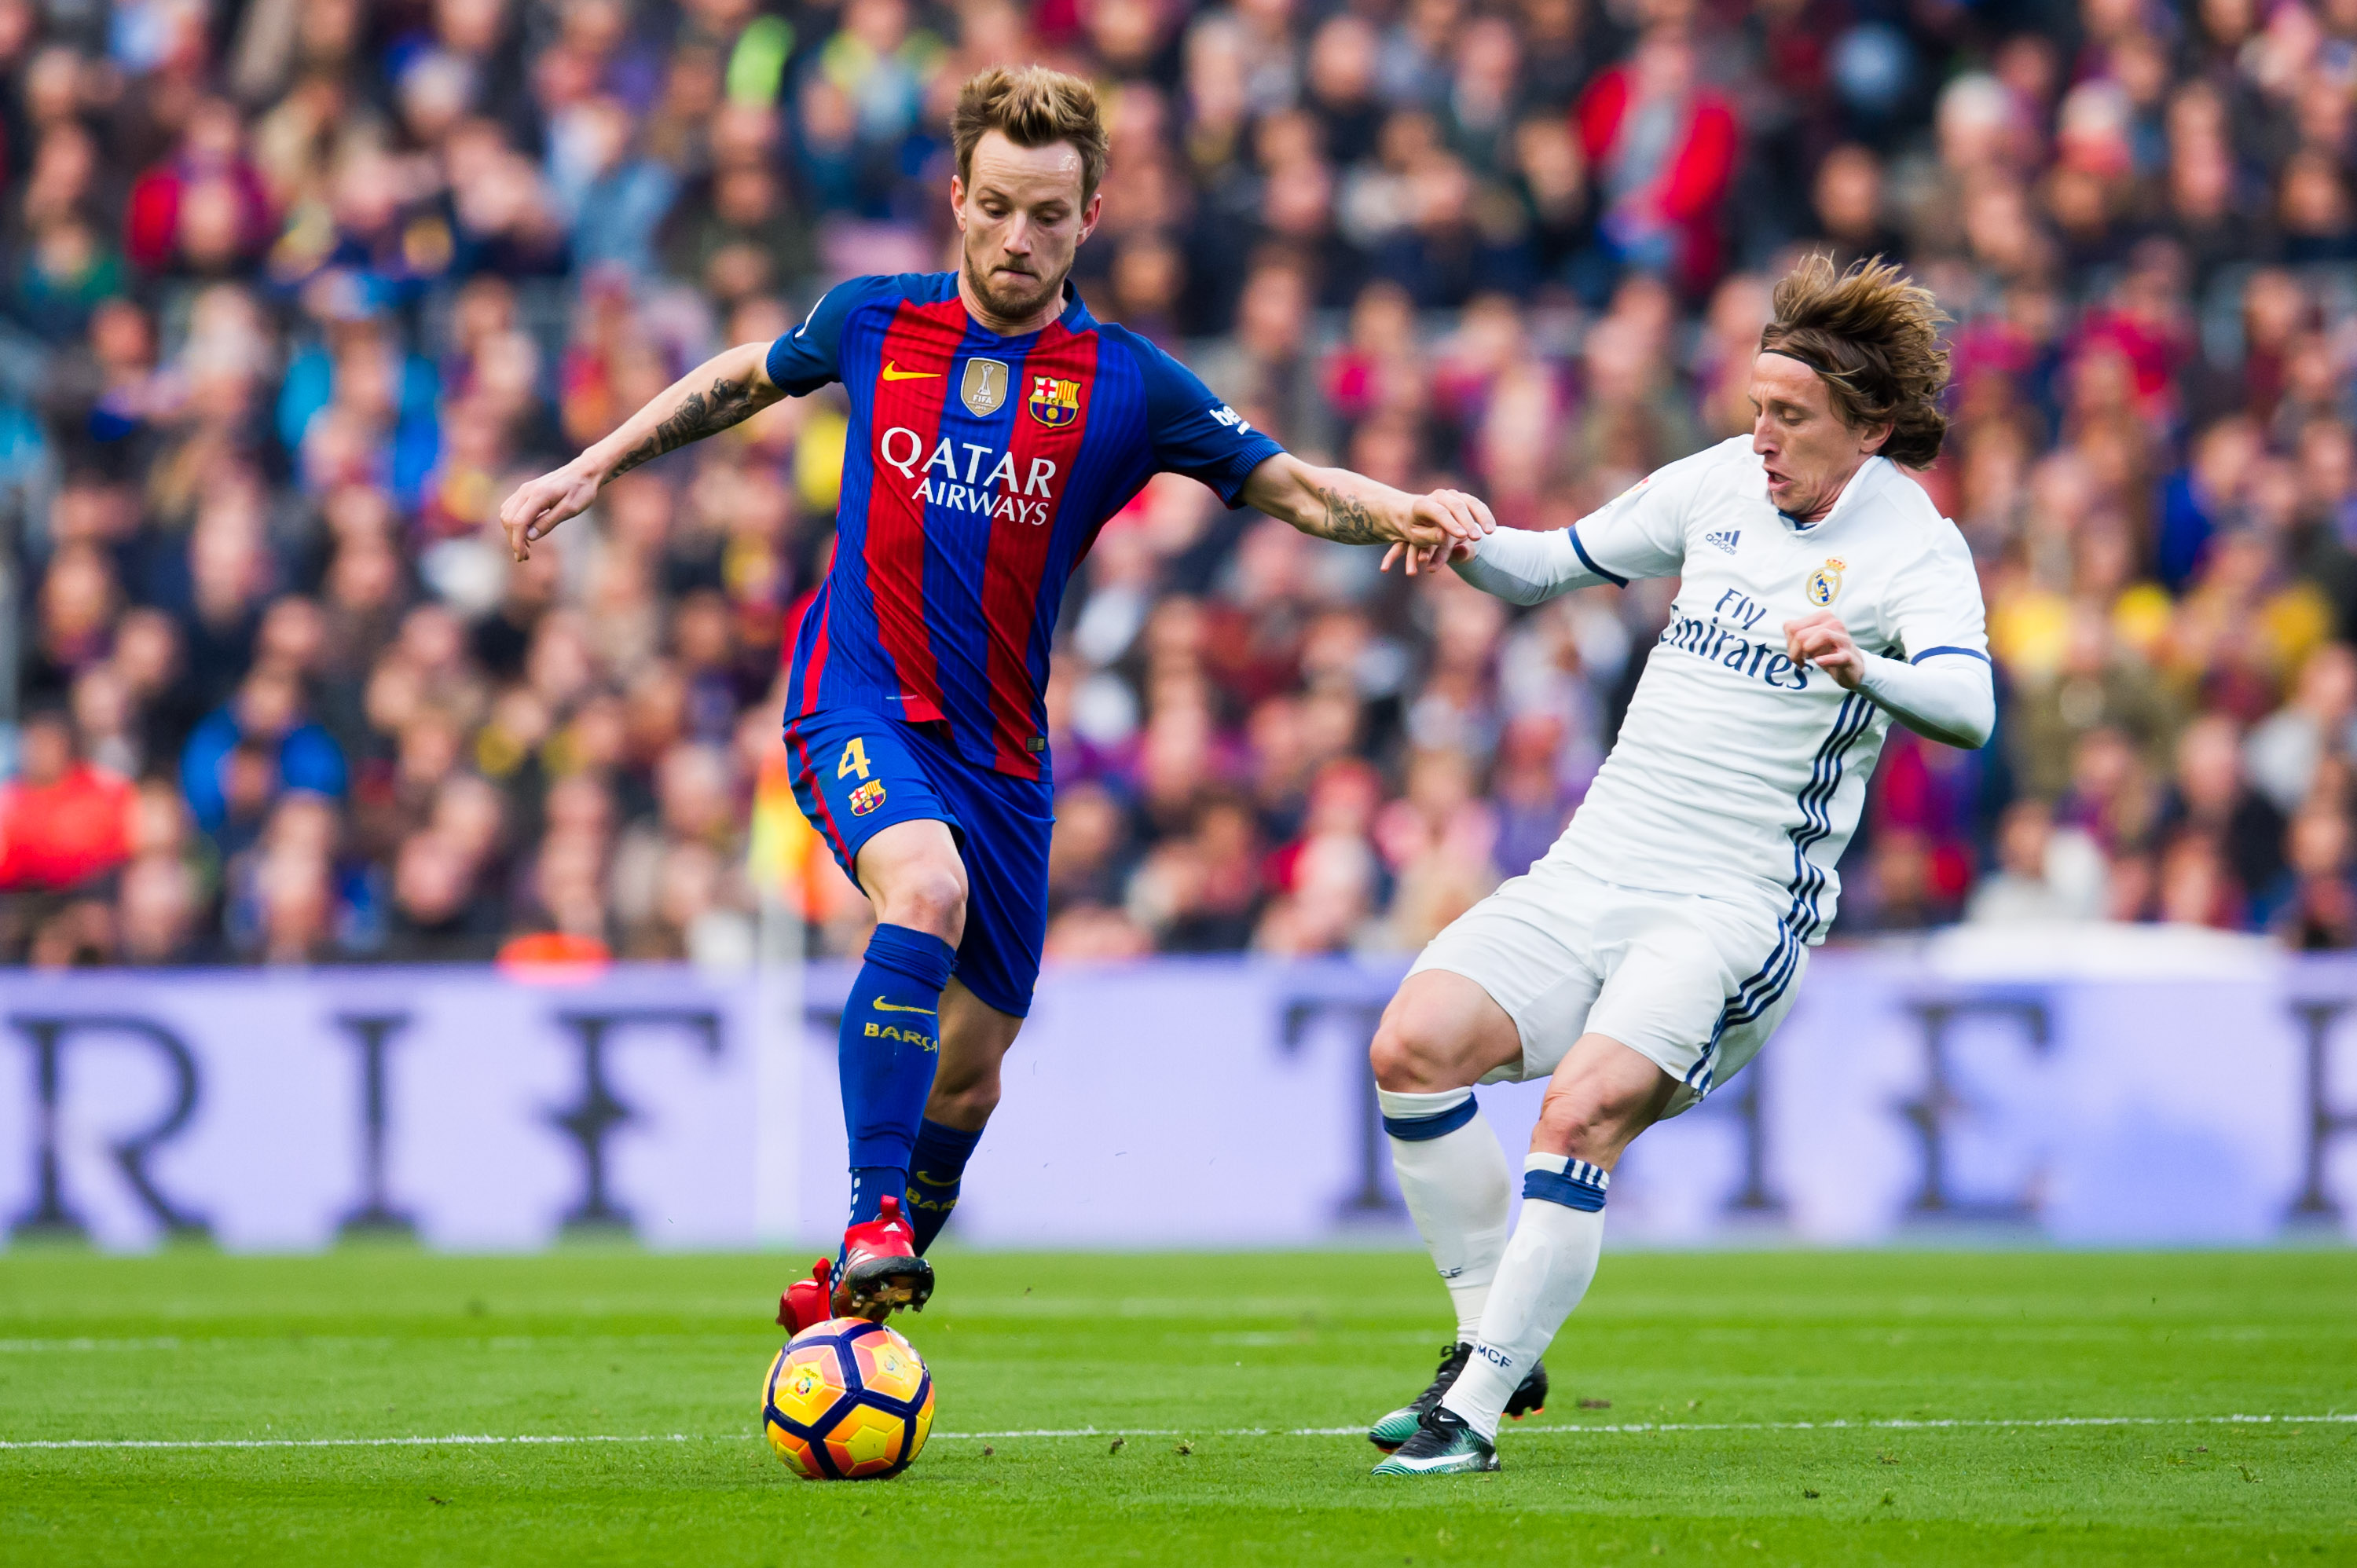 Captain Modric, and Vice-captain Rakitic are both unavailable for this international break. (Photo courtesy - Alex Caparros/Getty Images)